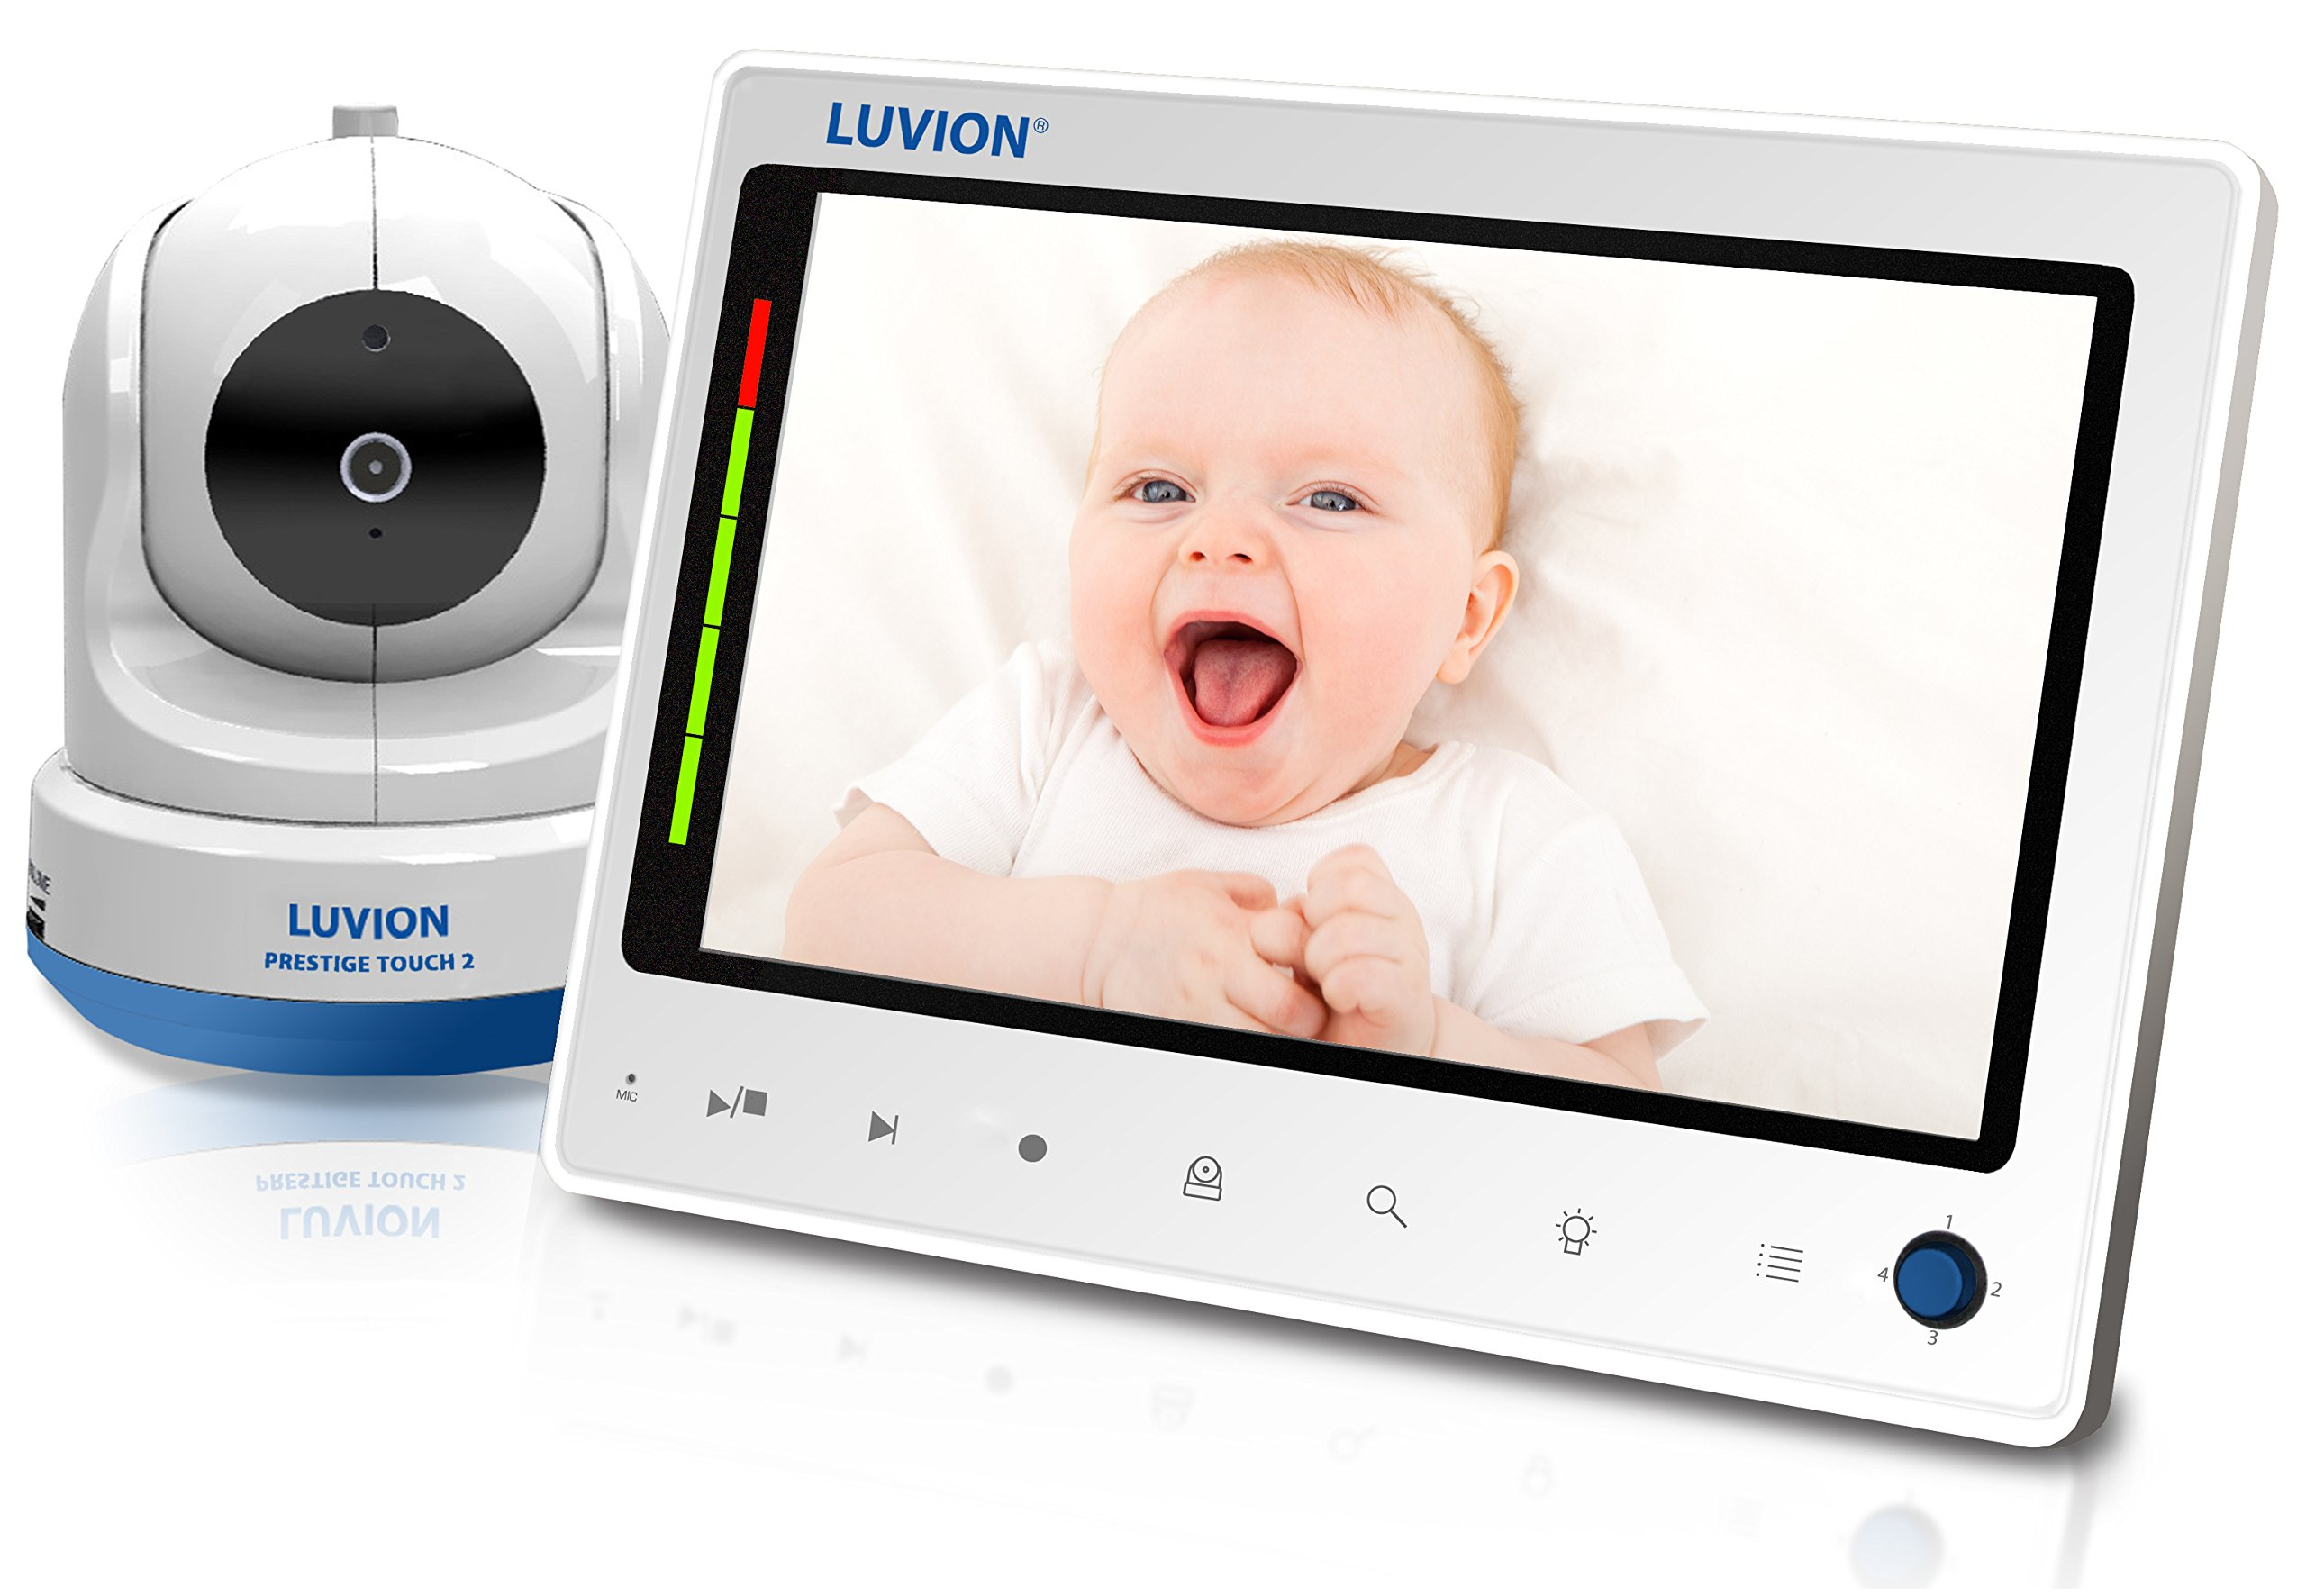 Luvion Prestige Touch 2 Video Baby Monitor - Mother & Baby Best Monitor 2017